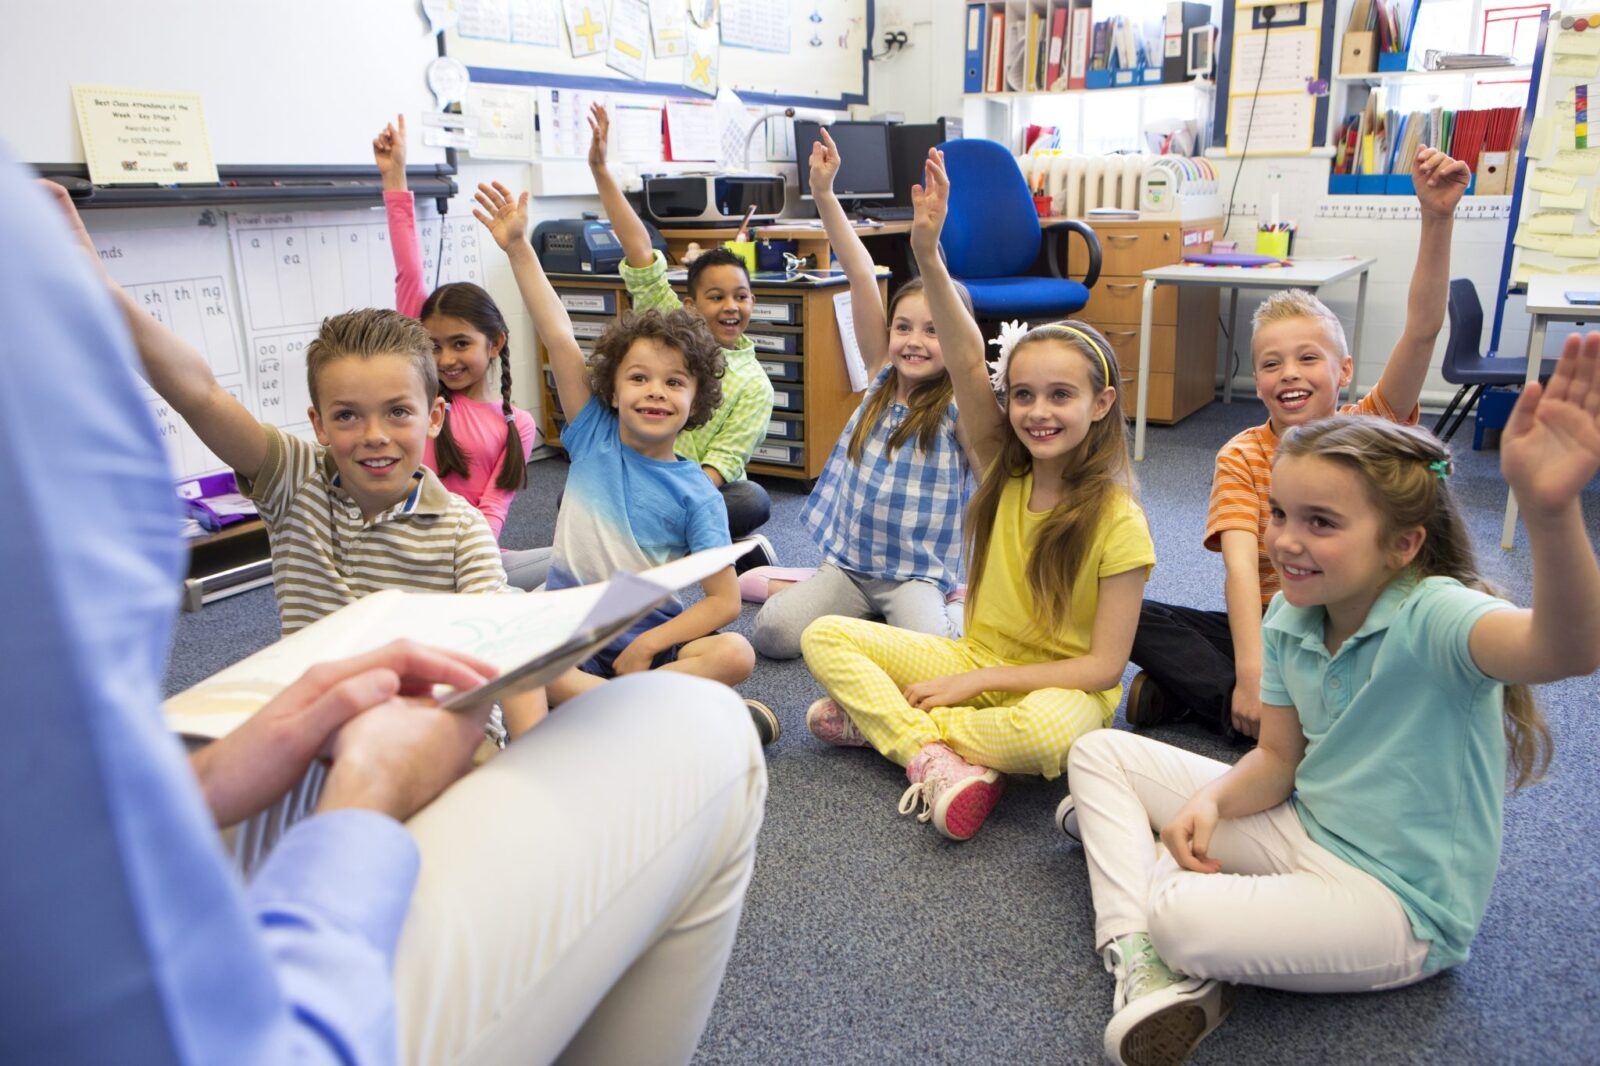 classroom management examples: keep kids engaged